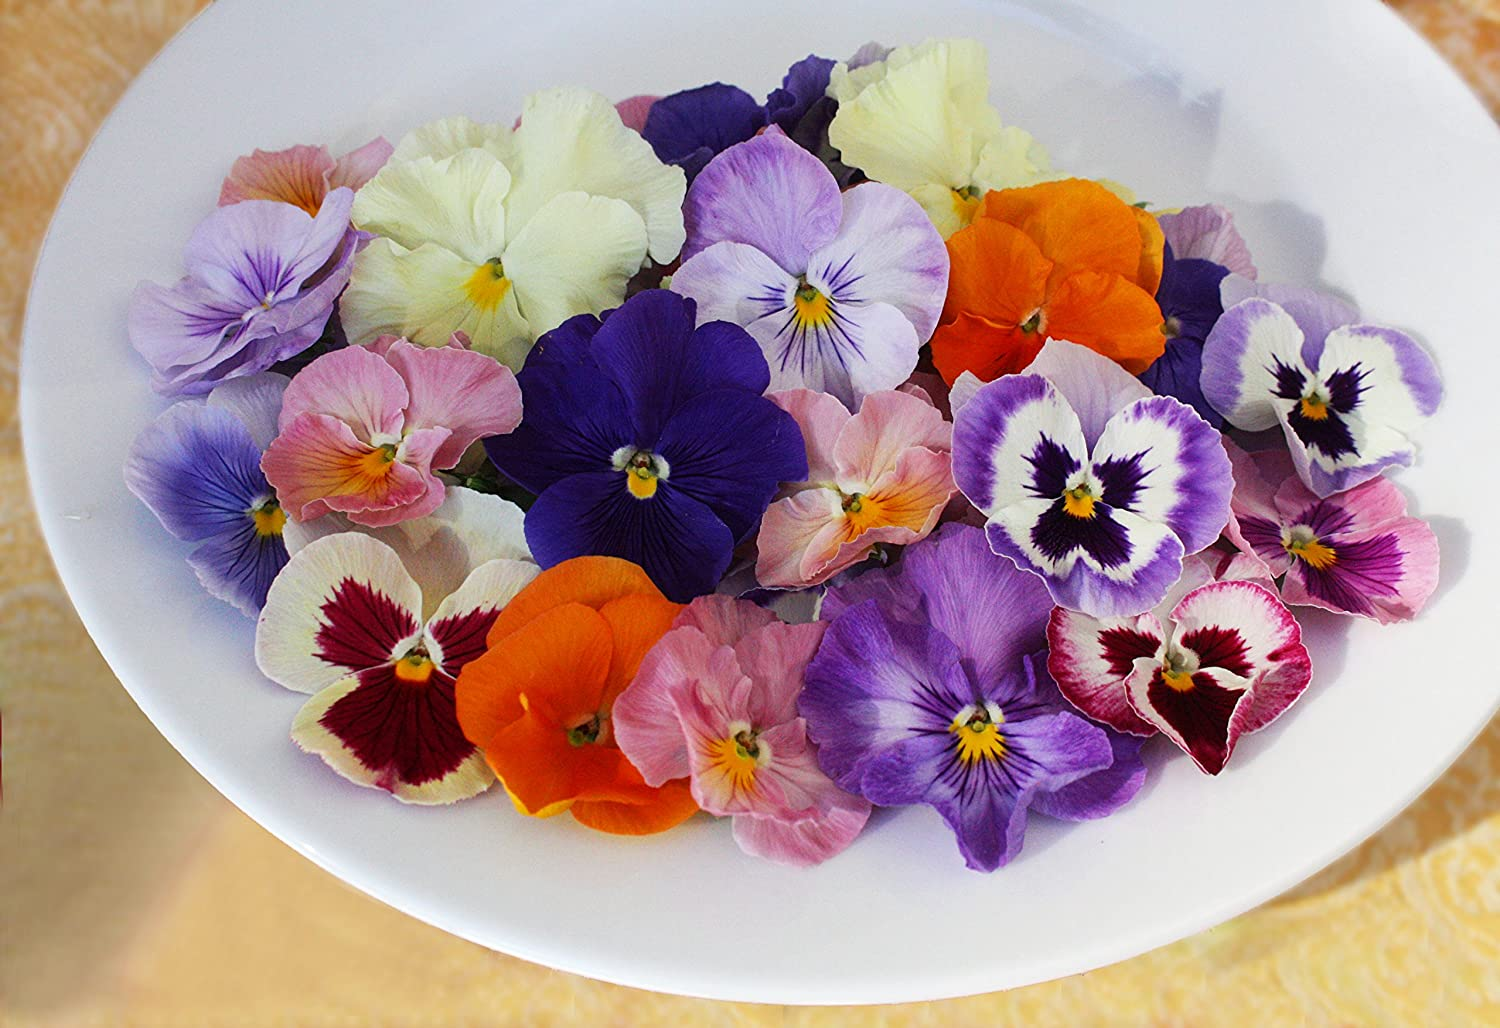 Edible Flowers Pansy 50 Count Amazon Grocery Gourmet Food